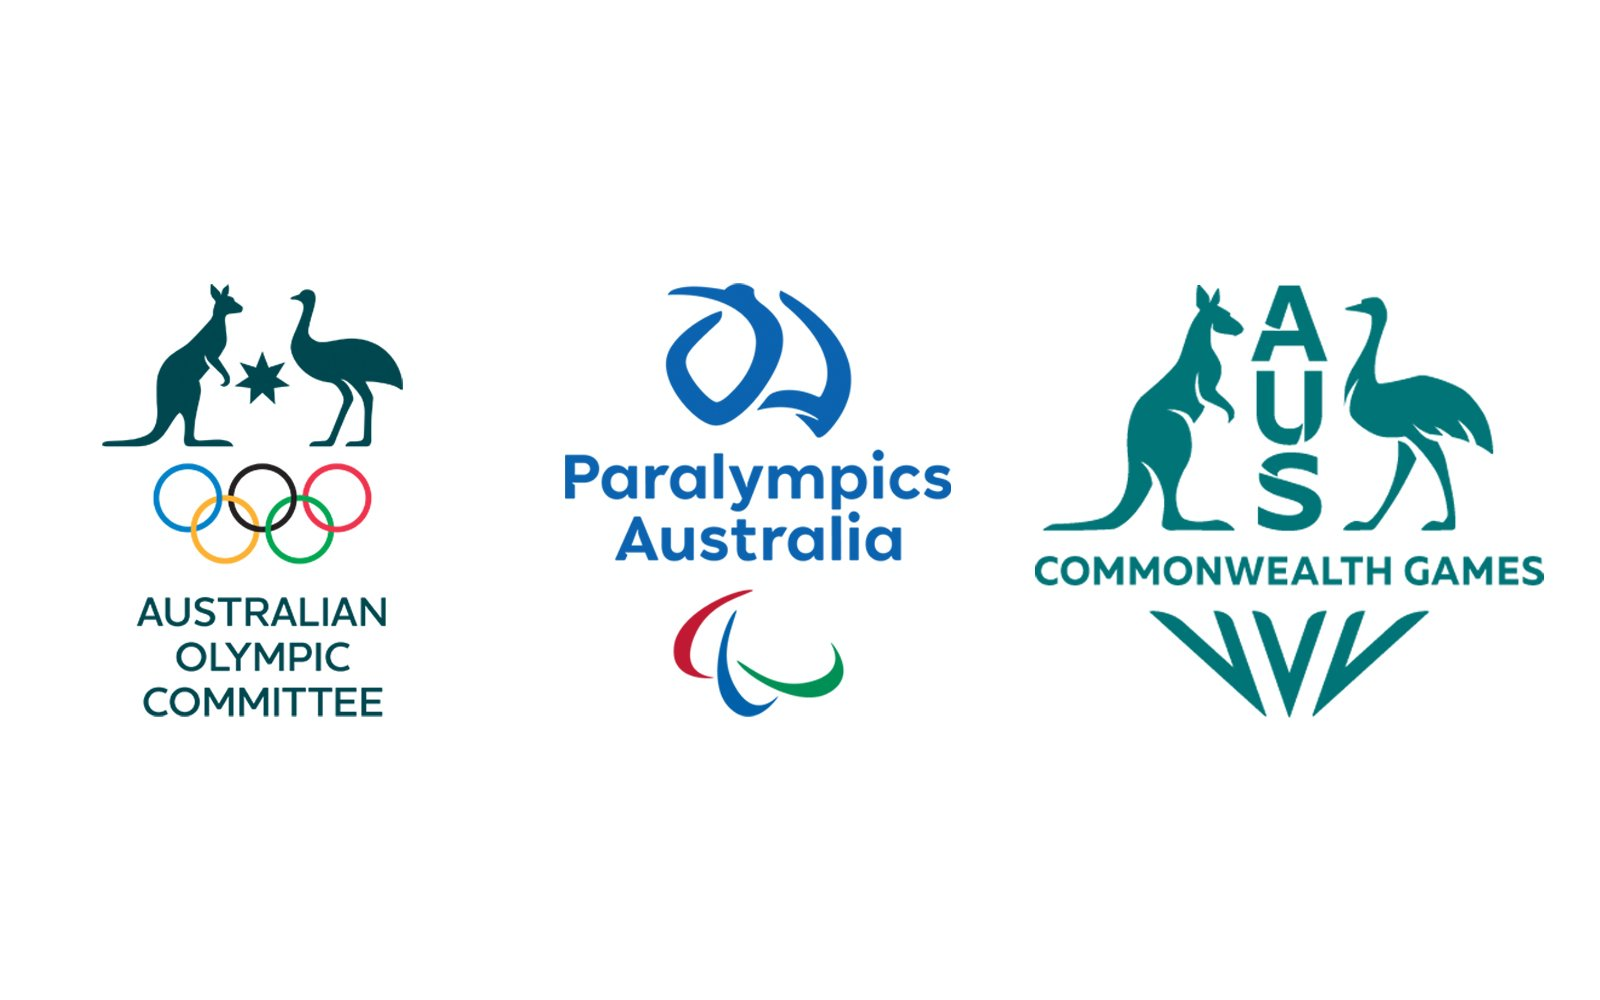 Sports Peak Bodies Welcome Introduction Of National Integrity Framework For Sport